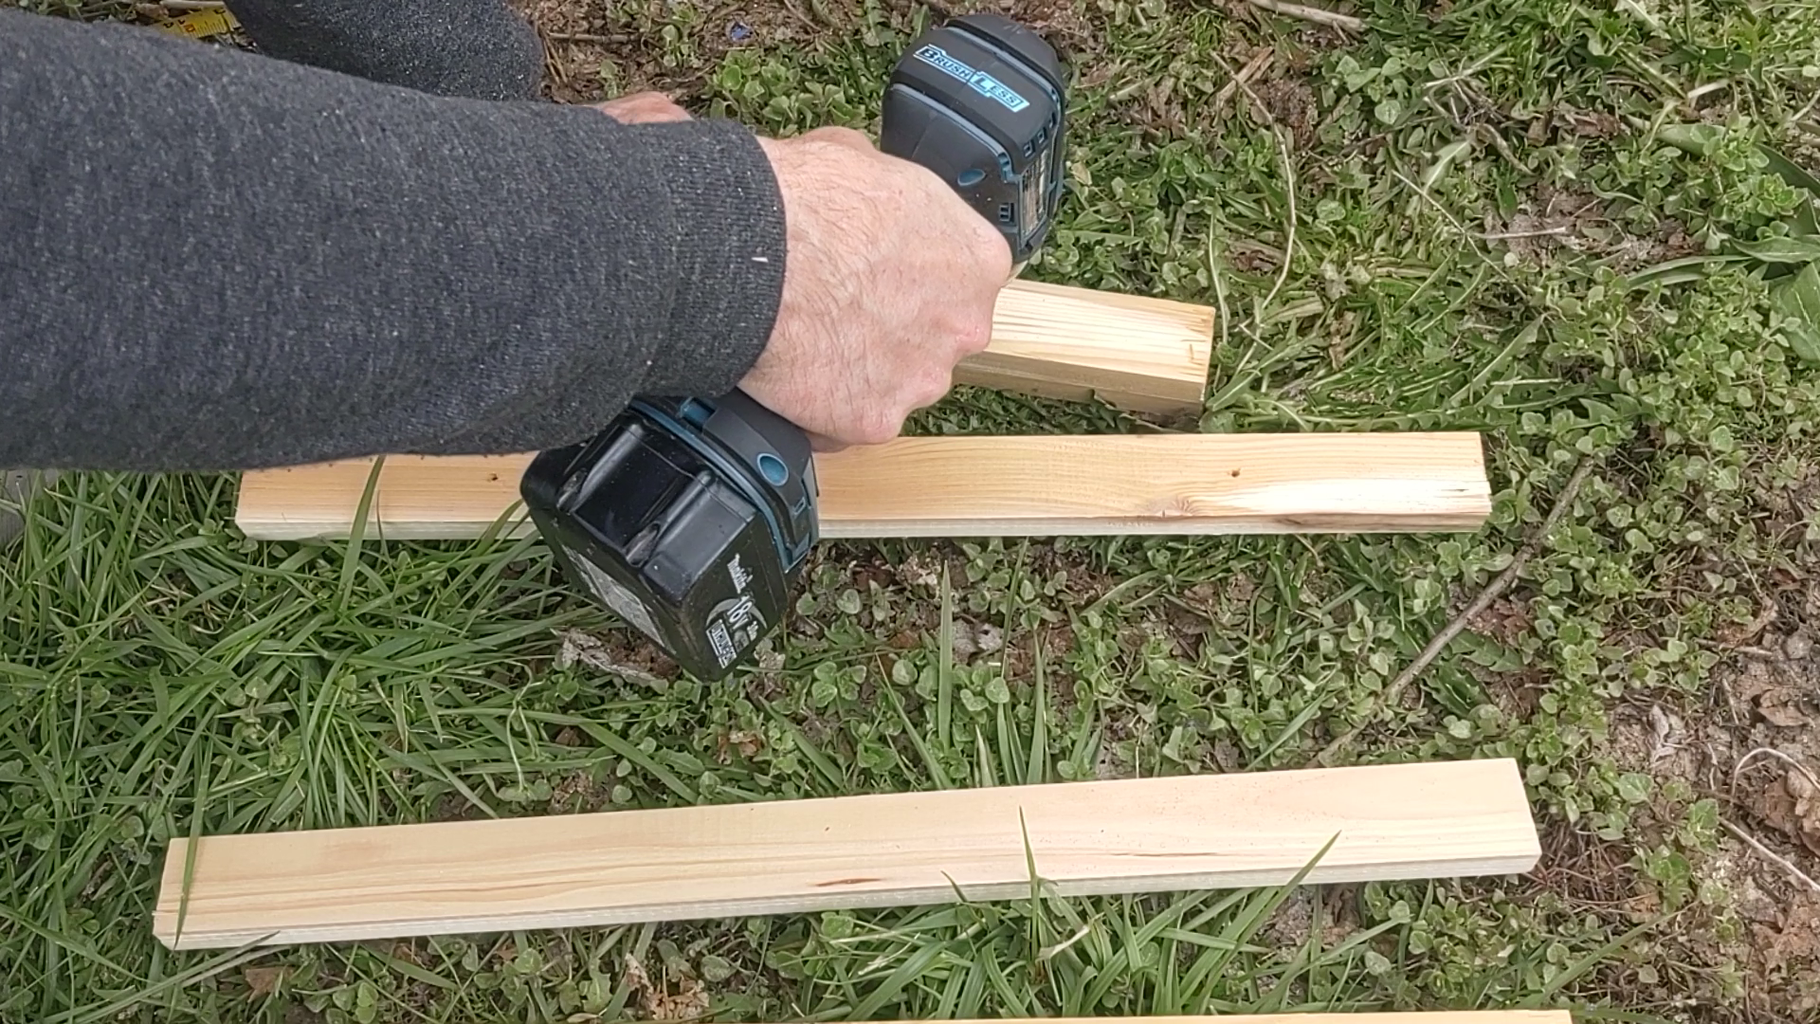 Make Sure the Screw Line Up